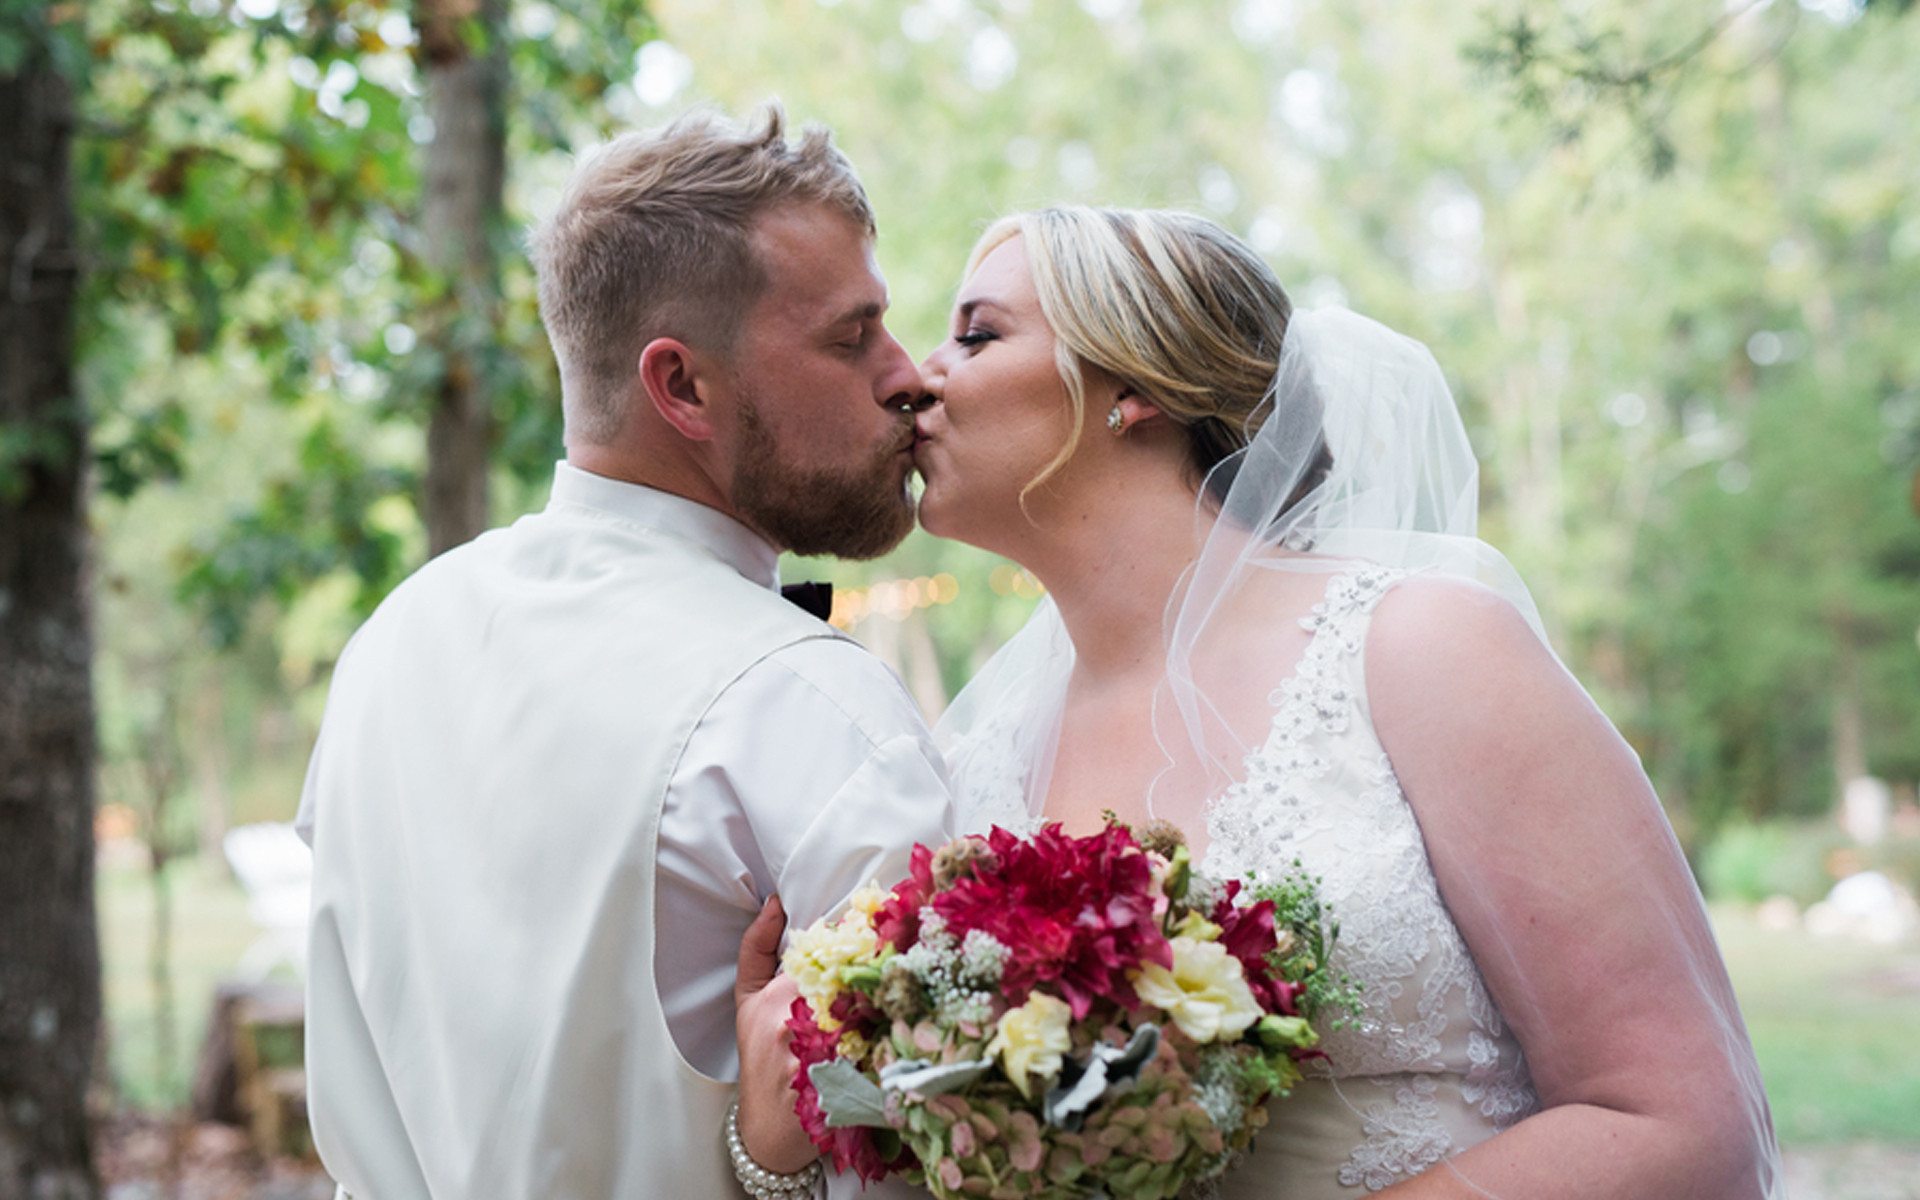 Love at first sight turns into gorgeous autumn wedding